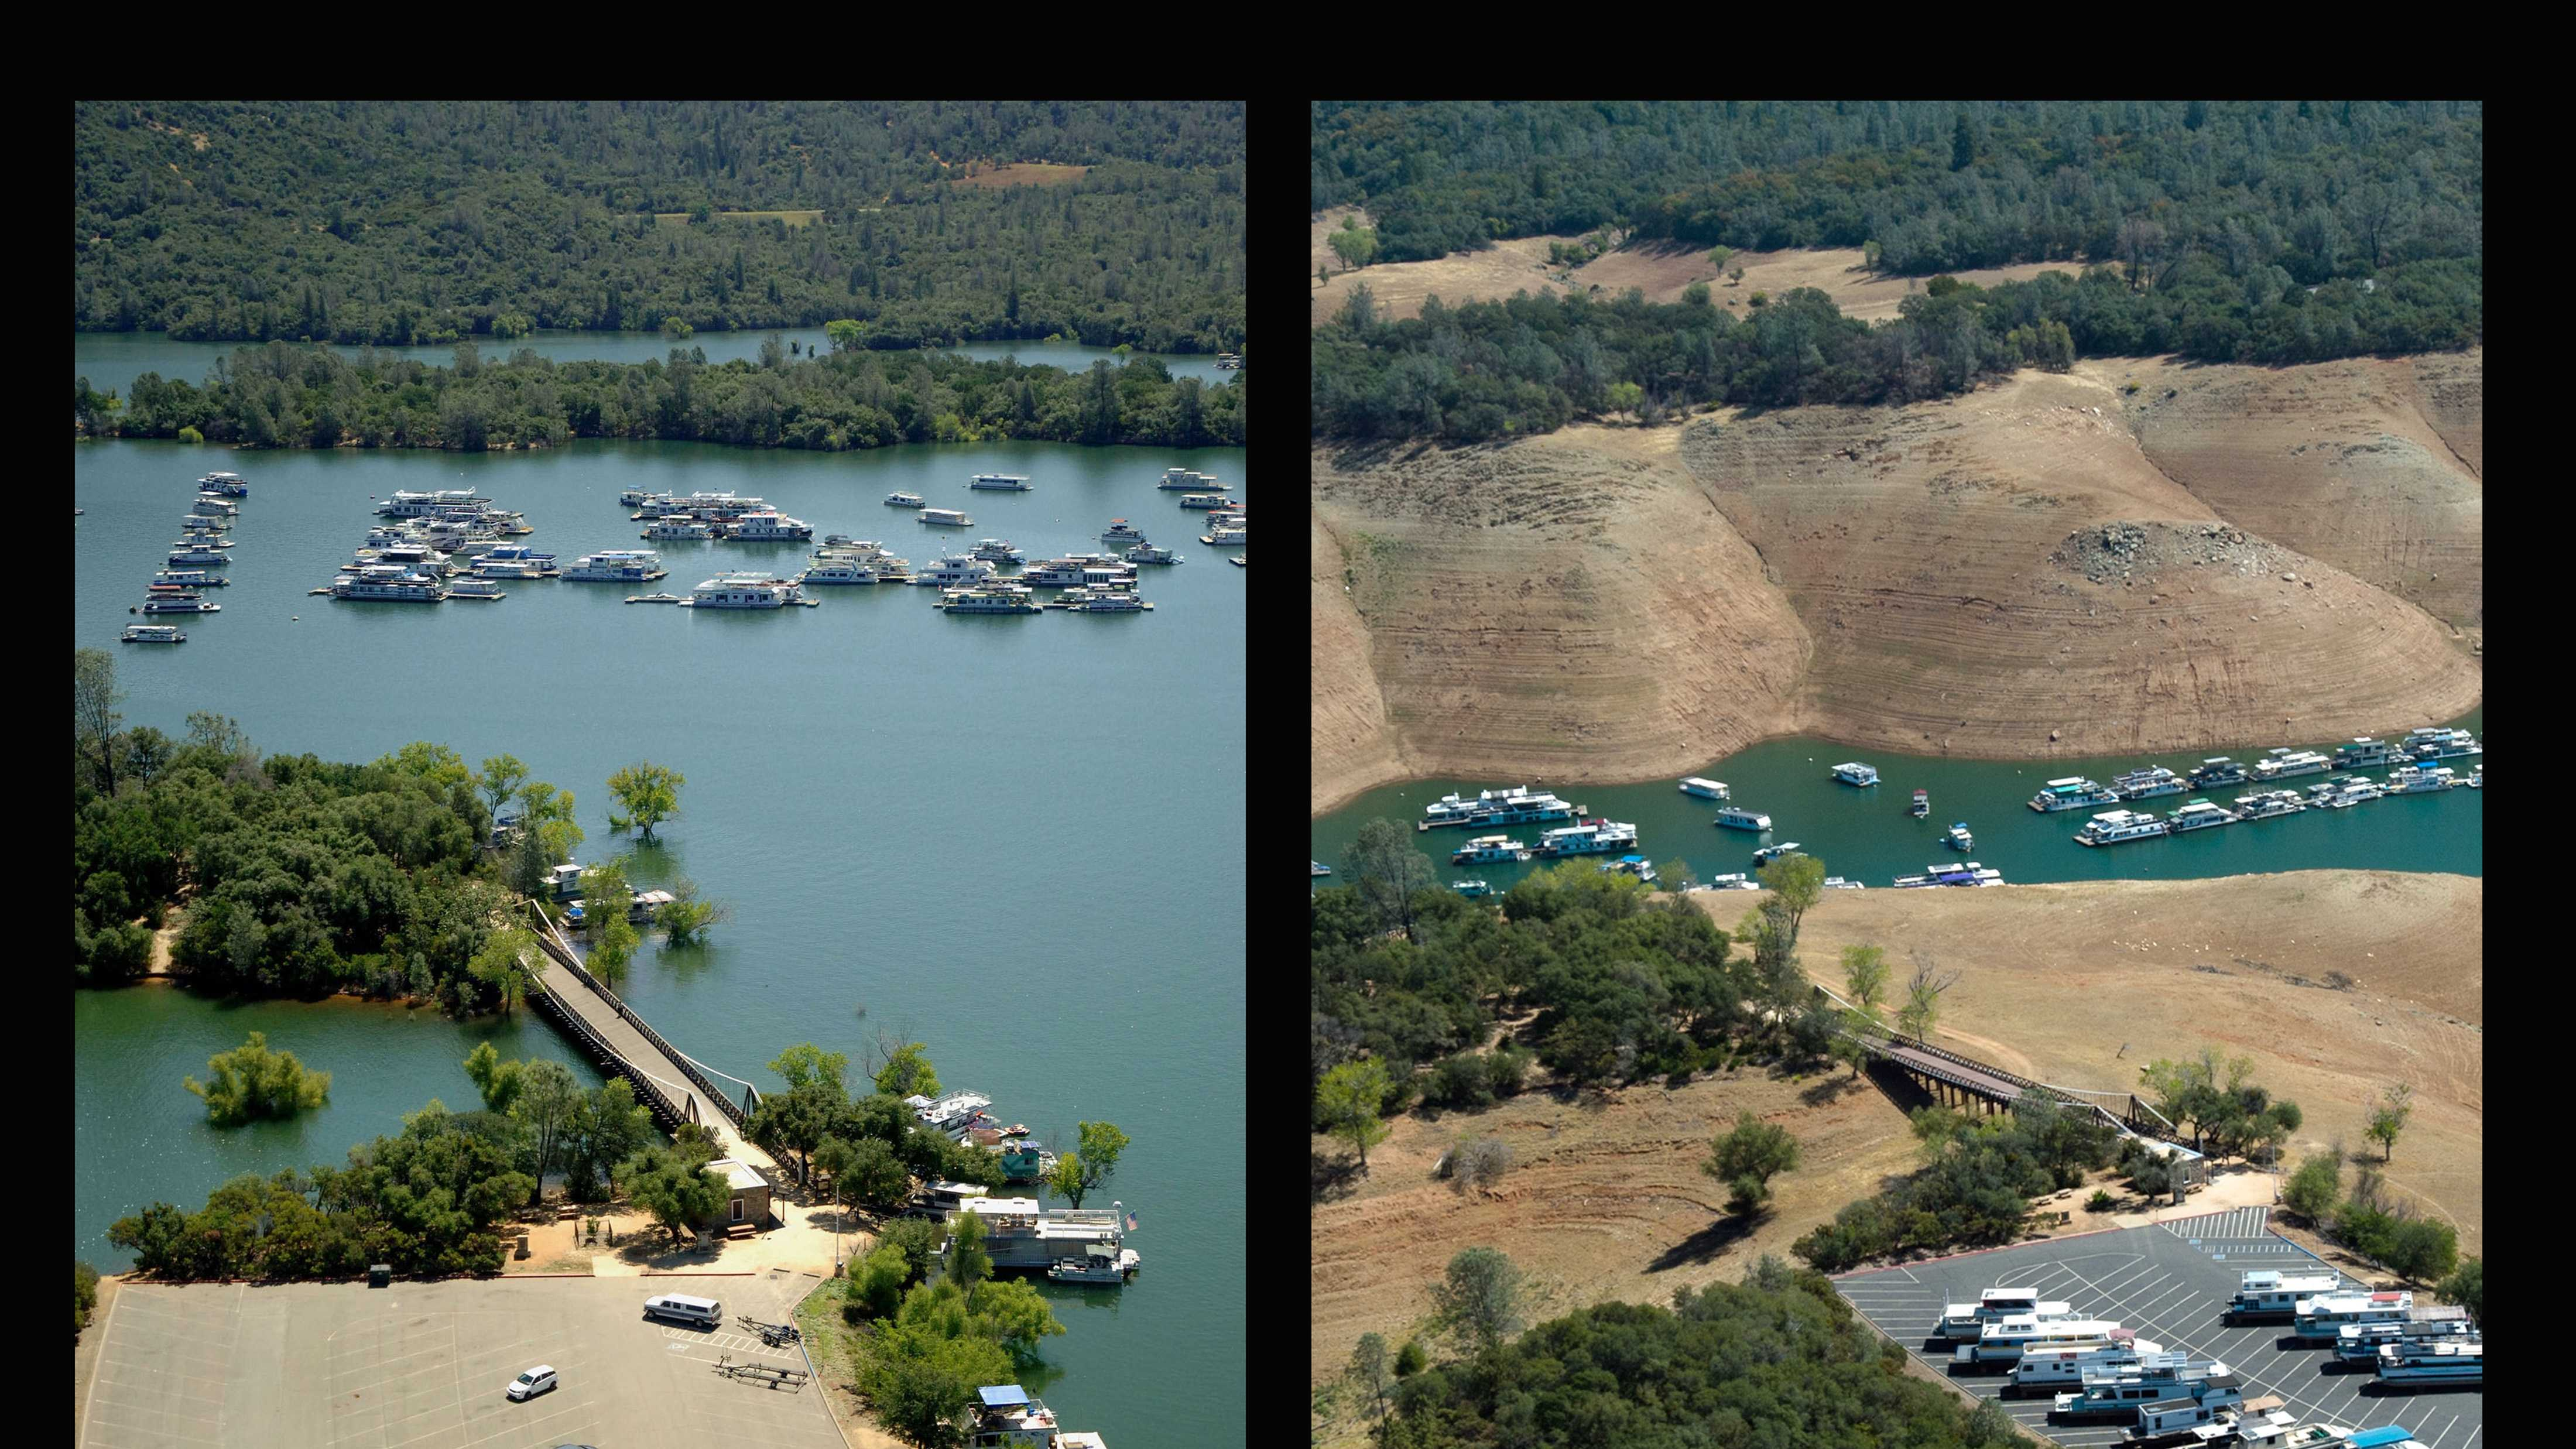 View a portrait of California's drought in these stunning before-and-after photos of Lake Oroville.All photos courtesy of the California Department of Water Resources.